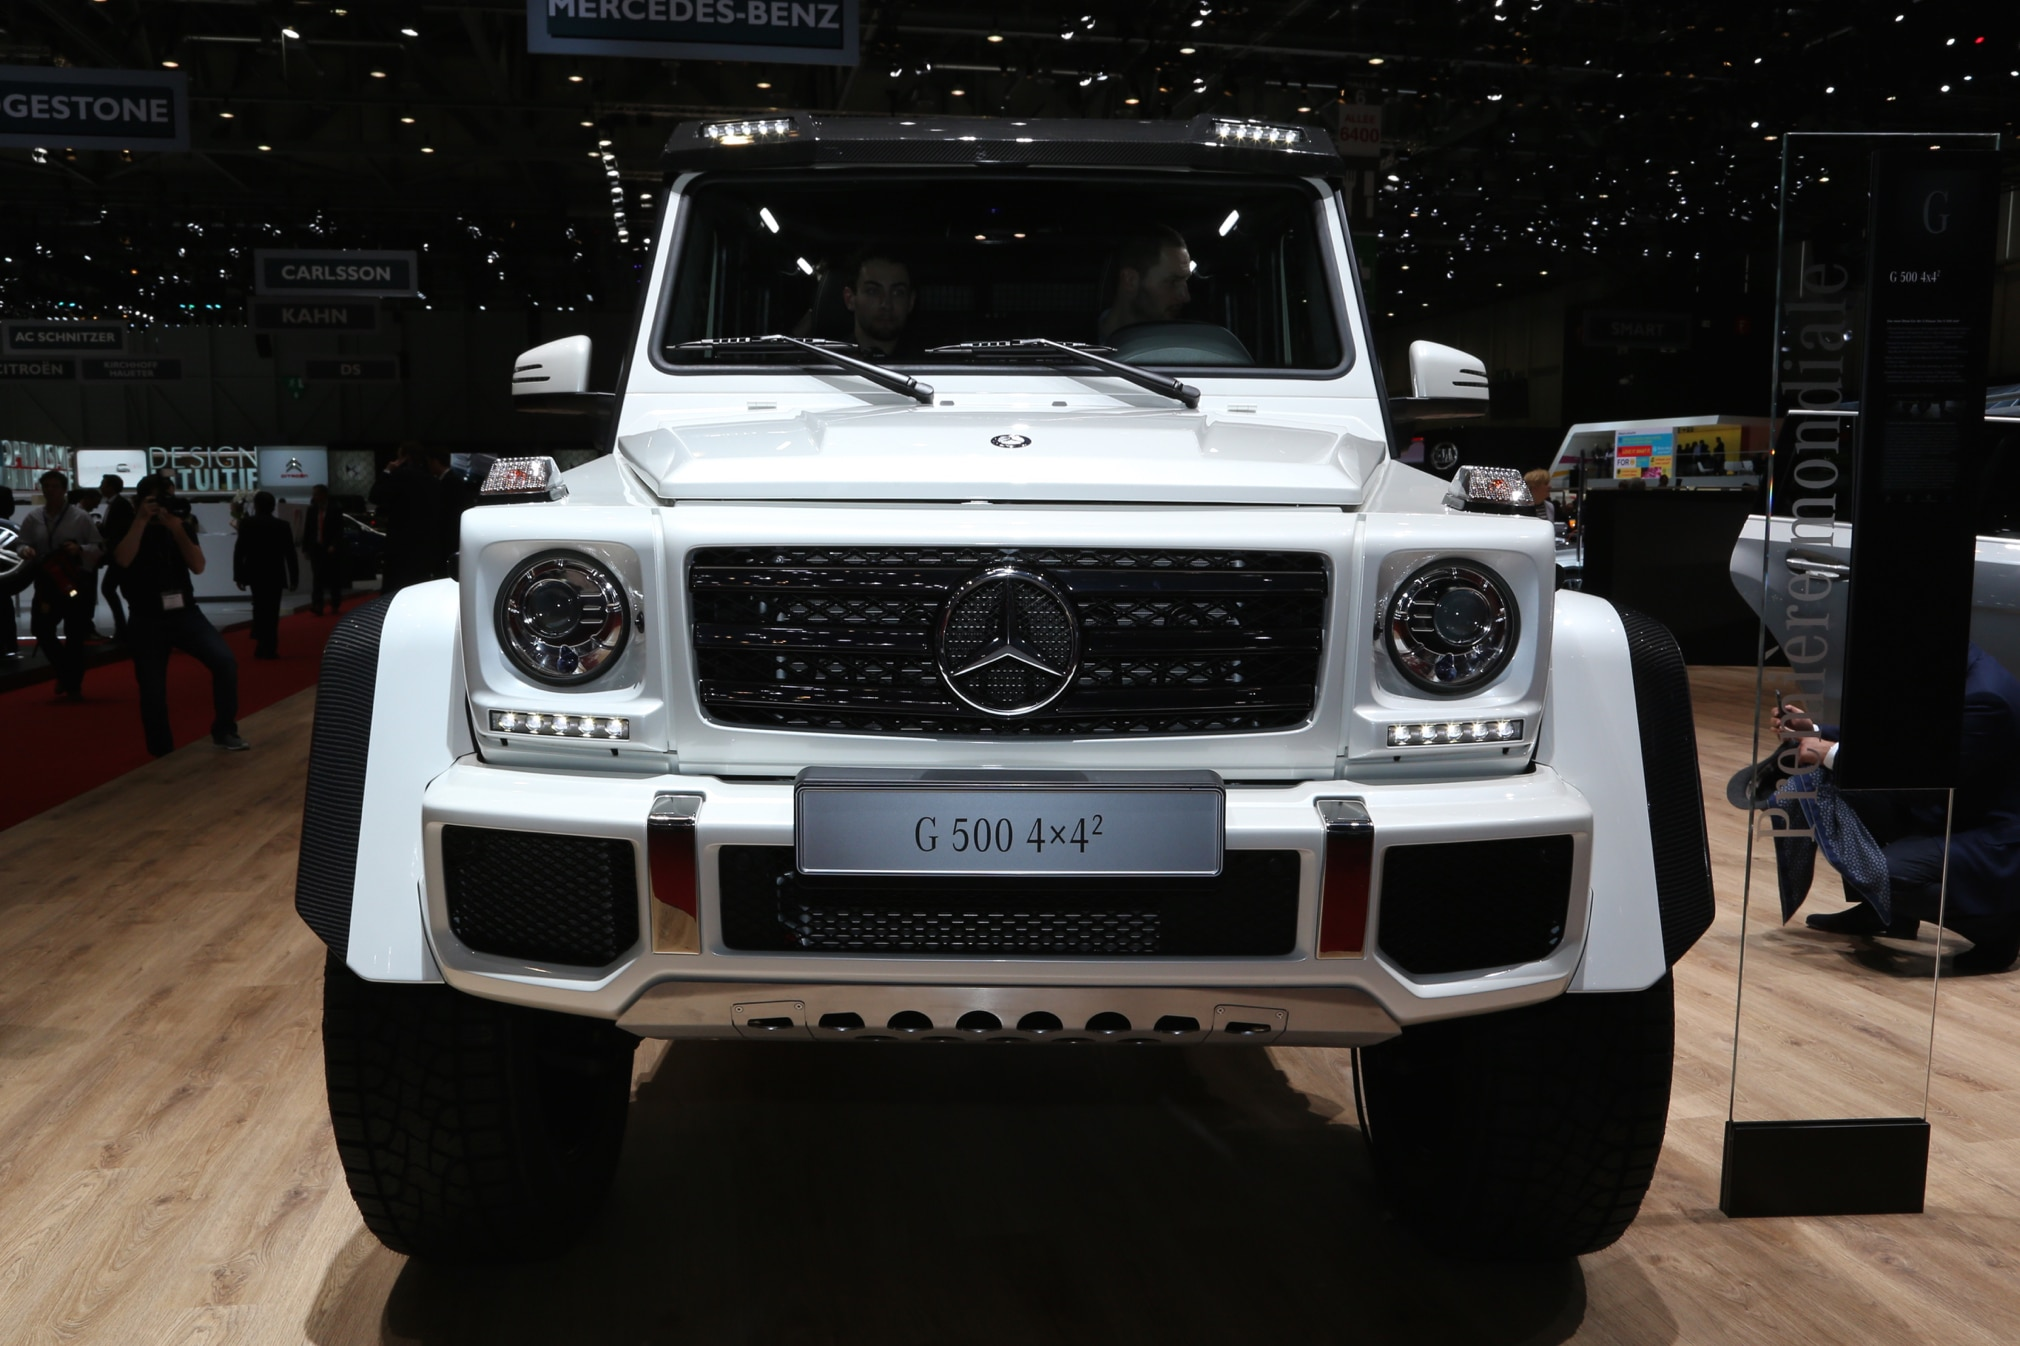 Mercedes Benz G500 4x4 Squared Enters Production Costs 256 000